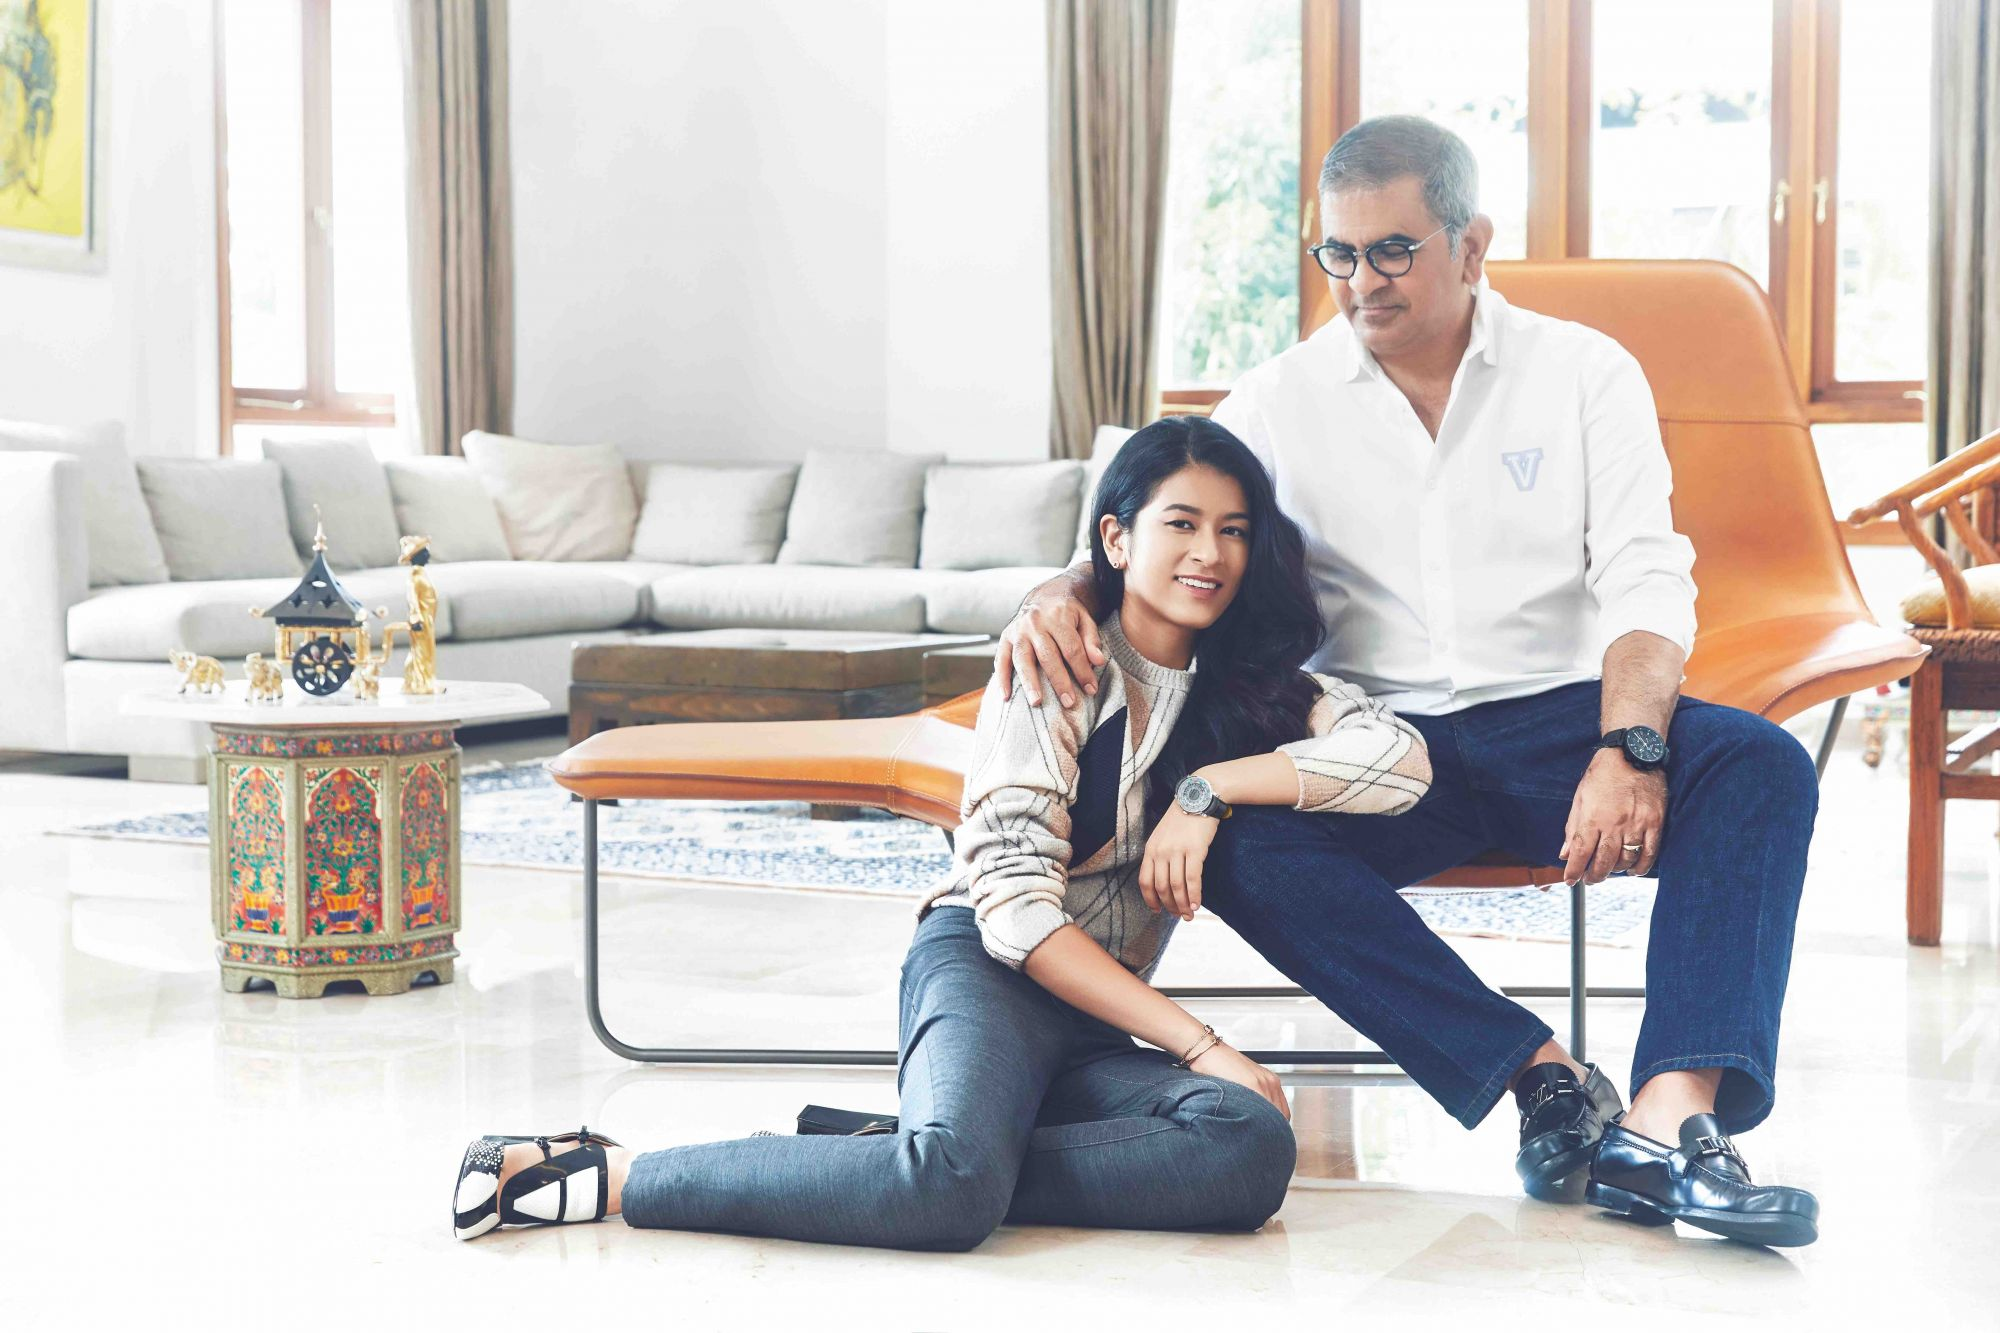 Why A Louis Vuitton Tambour Makes The Perfect Object To Symbolise A Father-Daughter Relationship